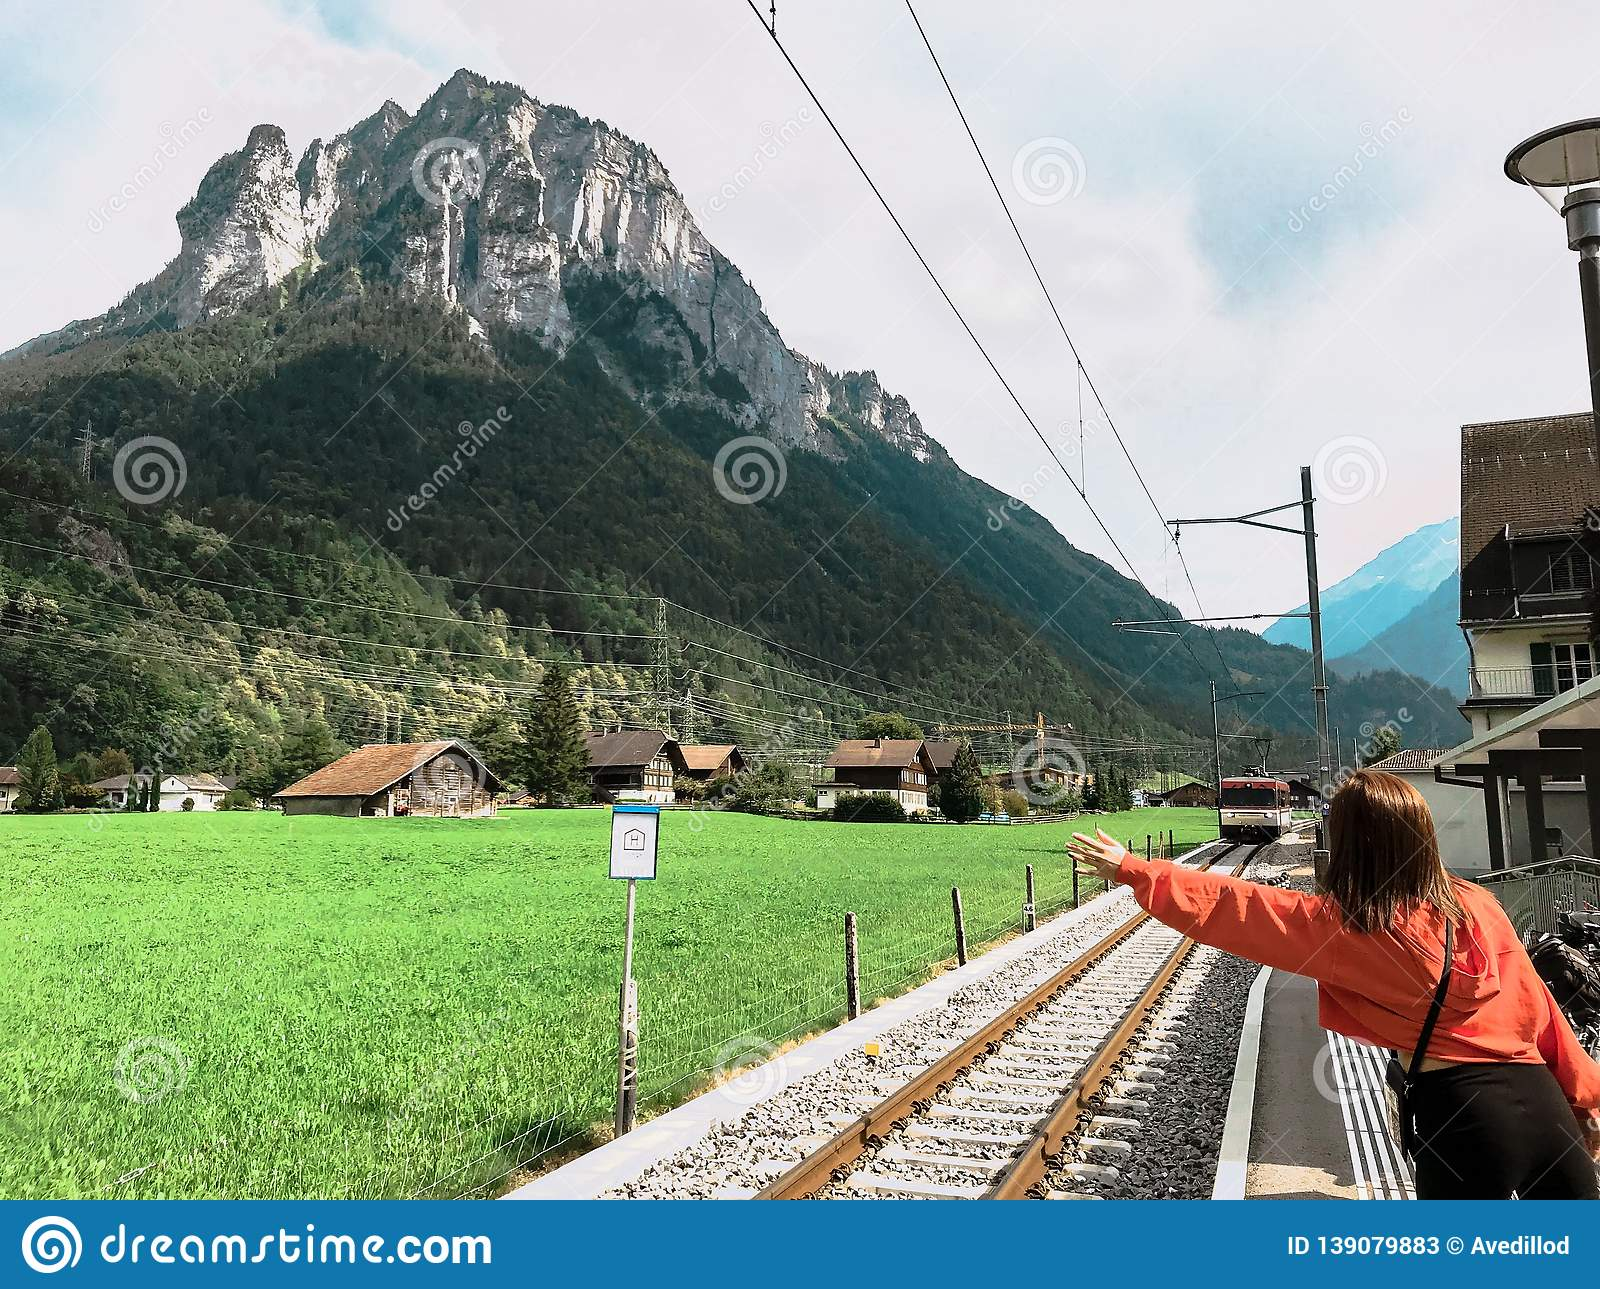 A woman waiting for the train